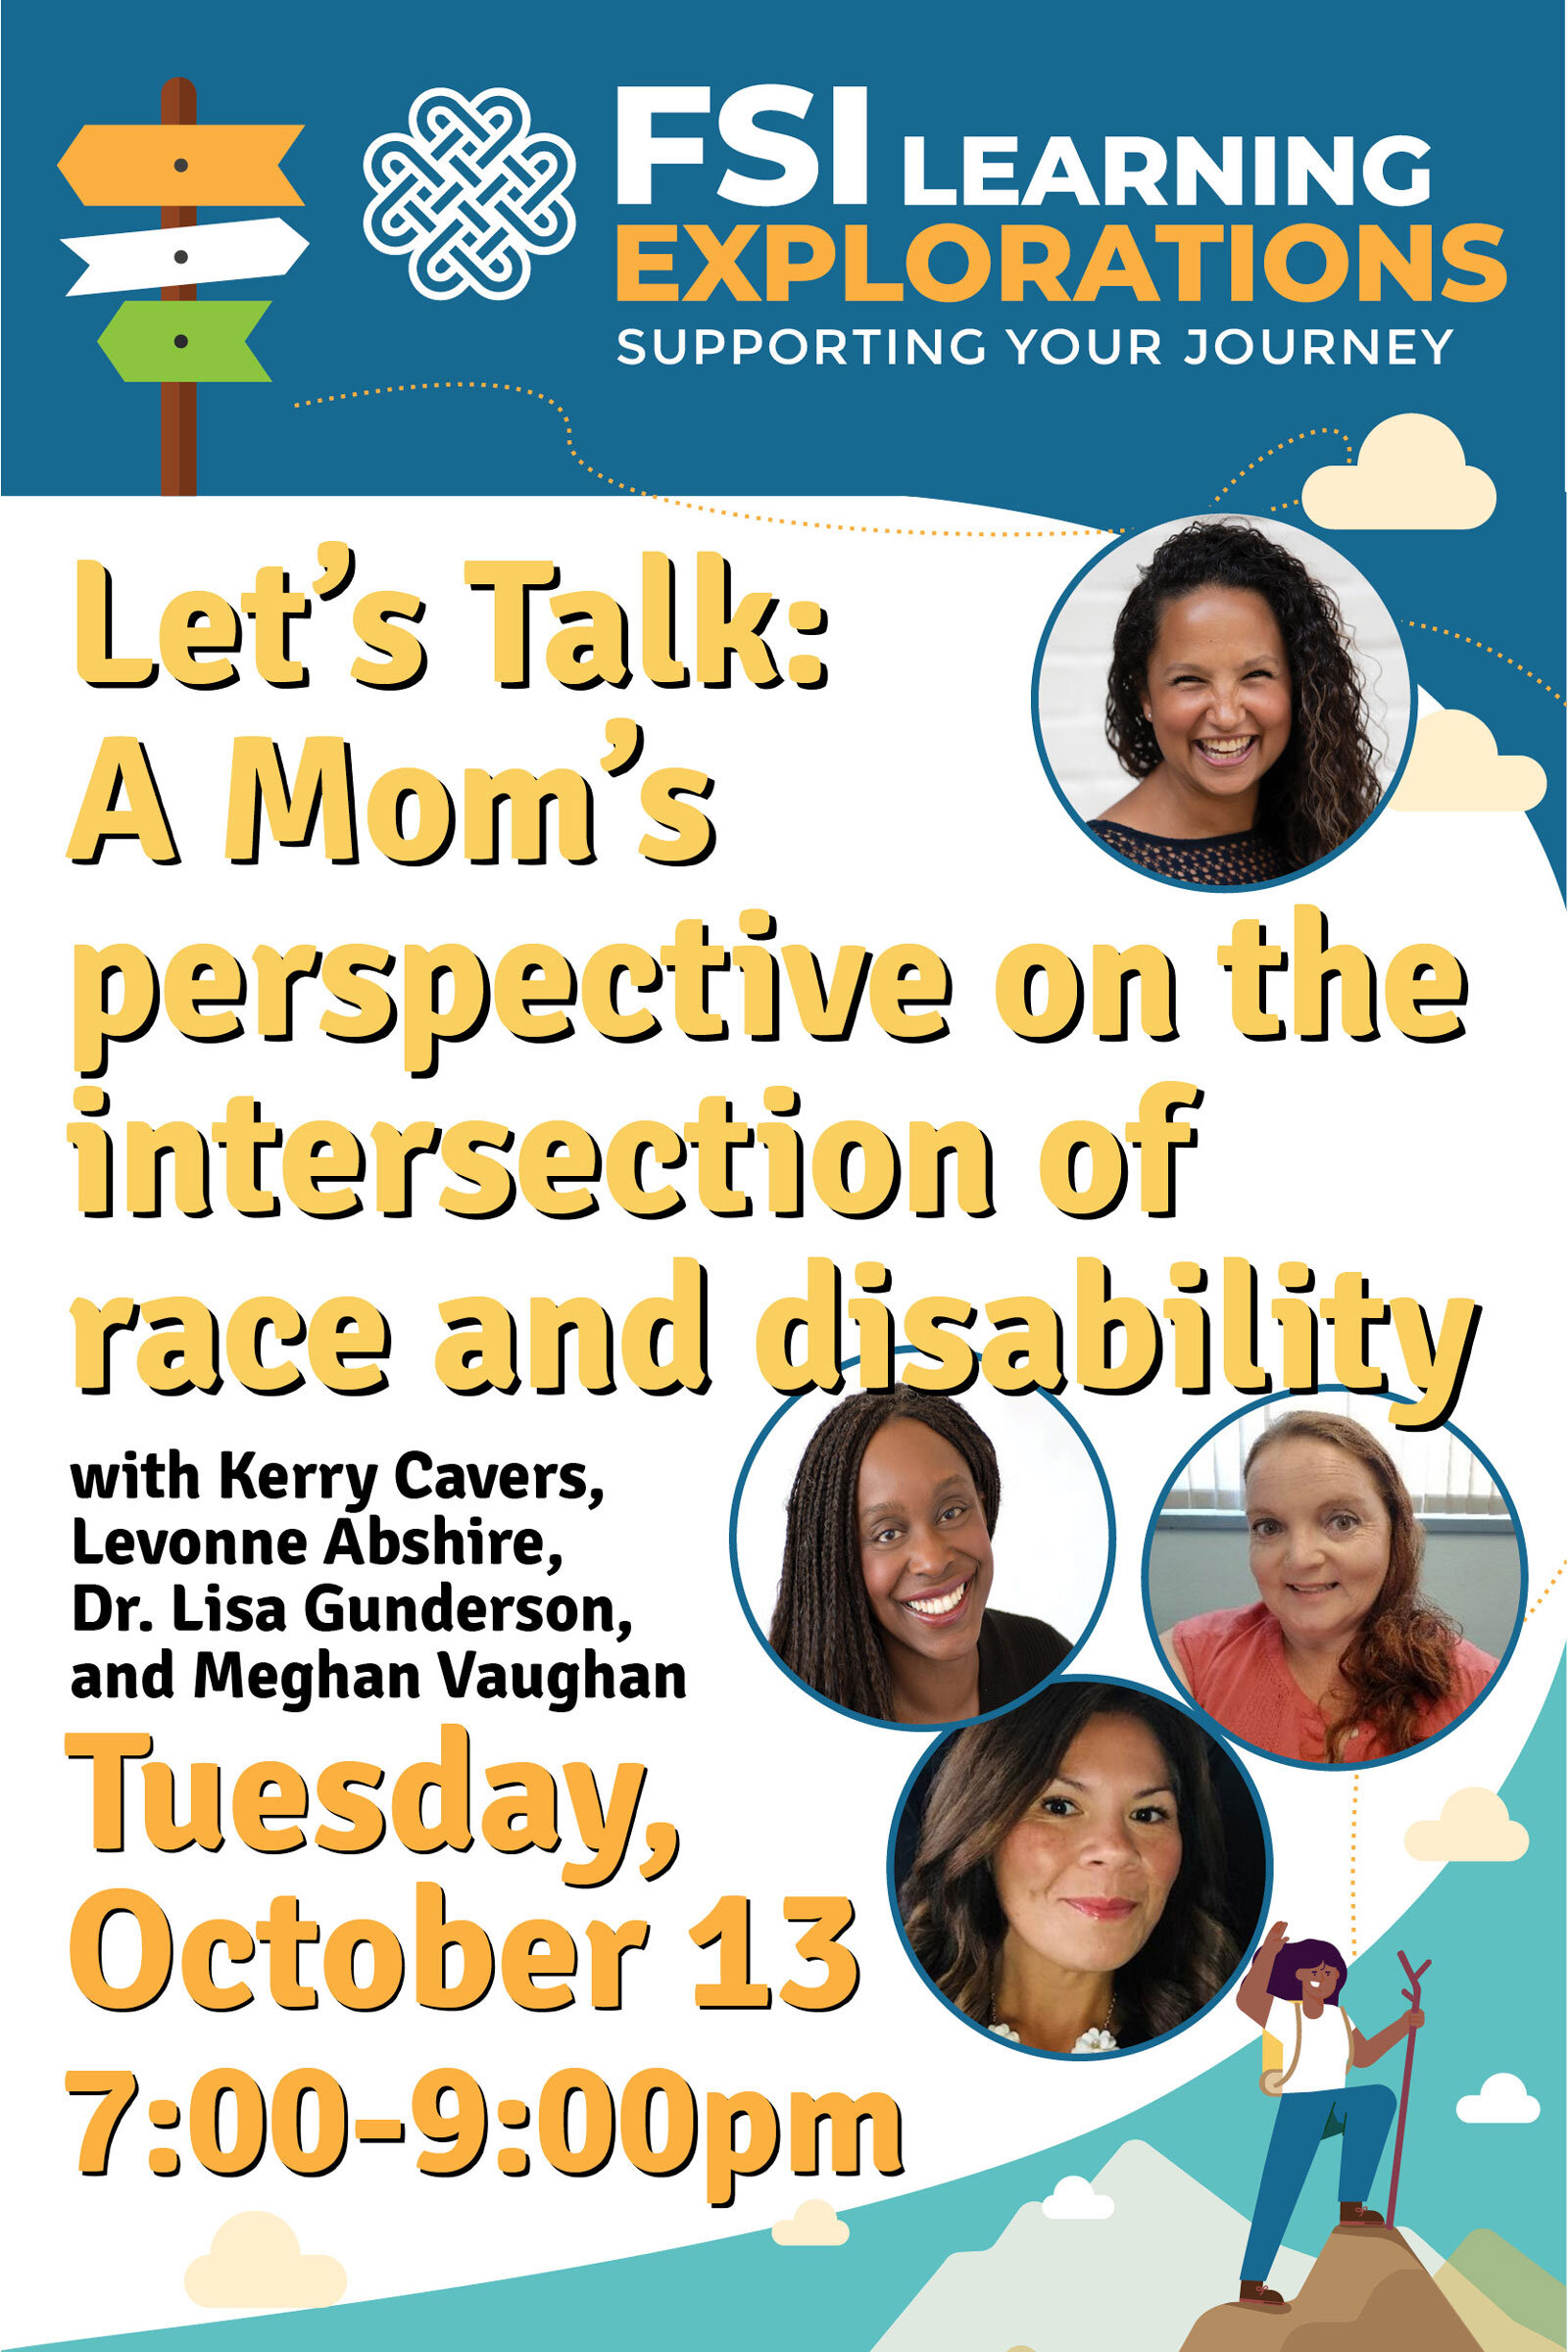 FSI Learning Explorations -Let's Talk: A Mom's perspective on the intersection of race and disability.